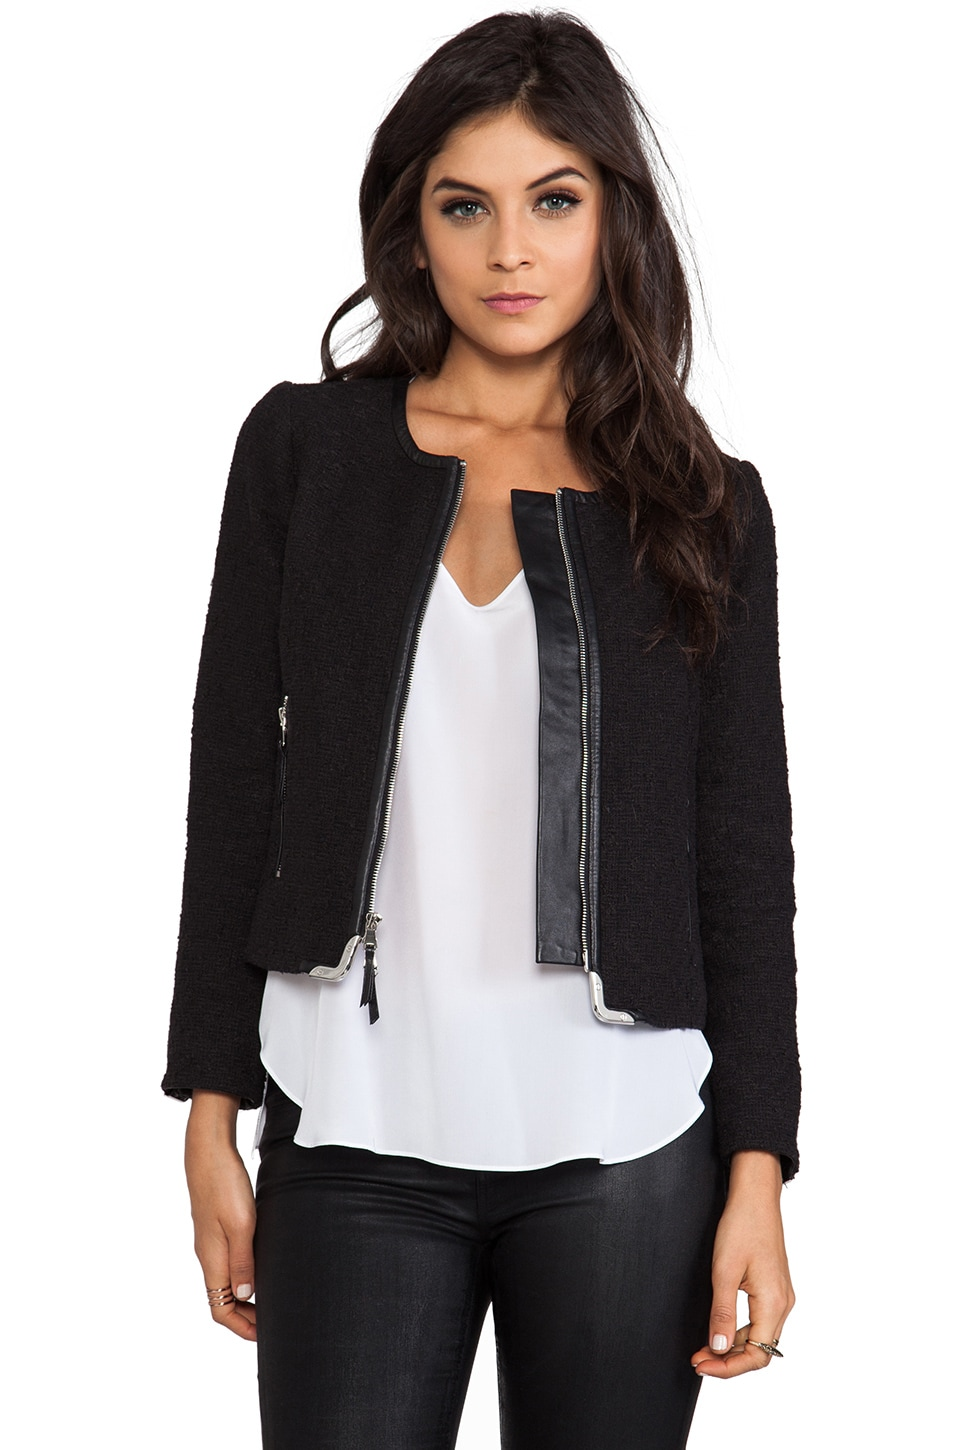 MILLY Biella Tweed Harper Zipper Jacket in Black